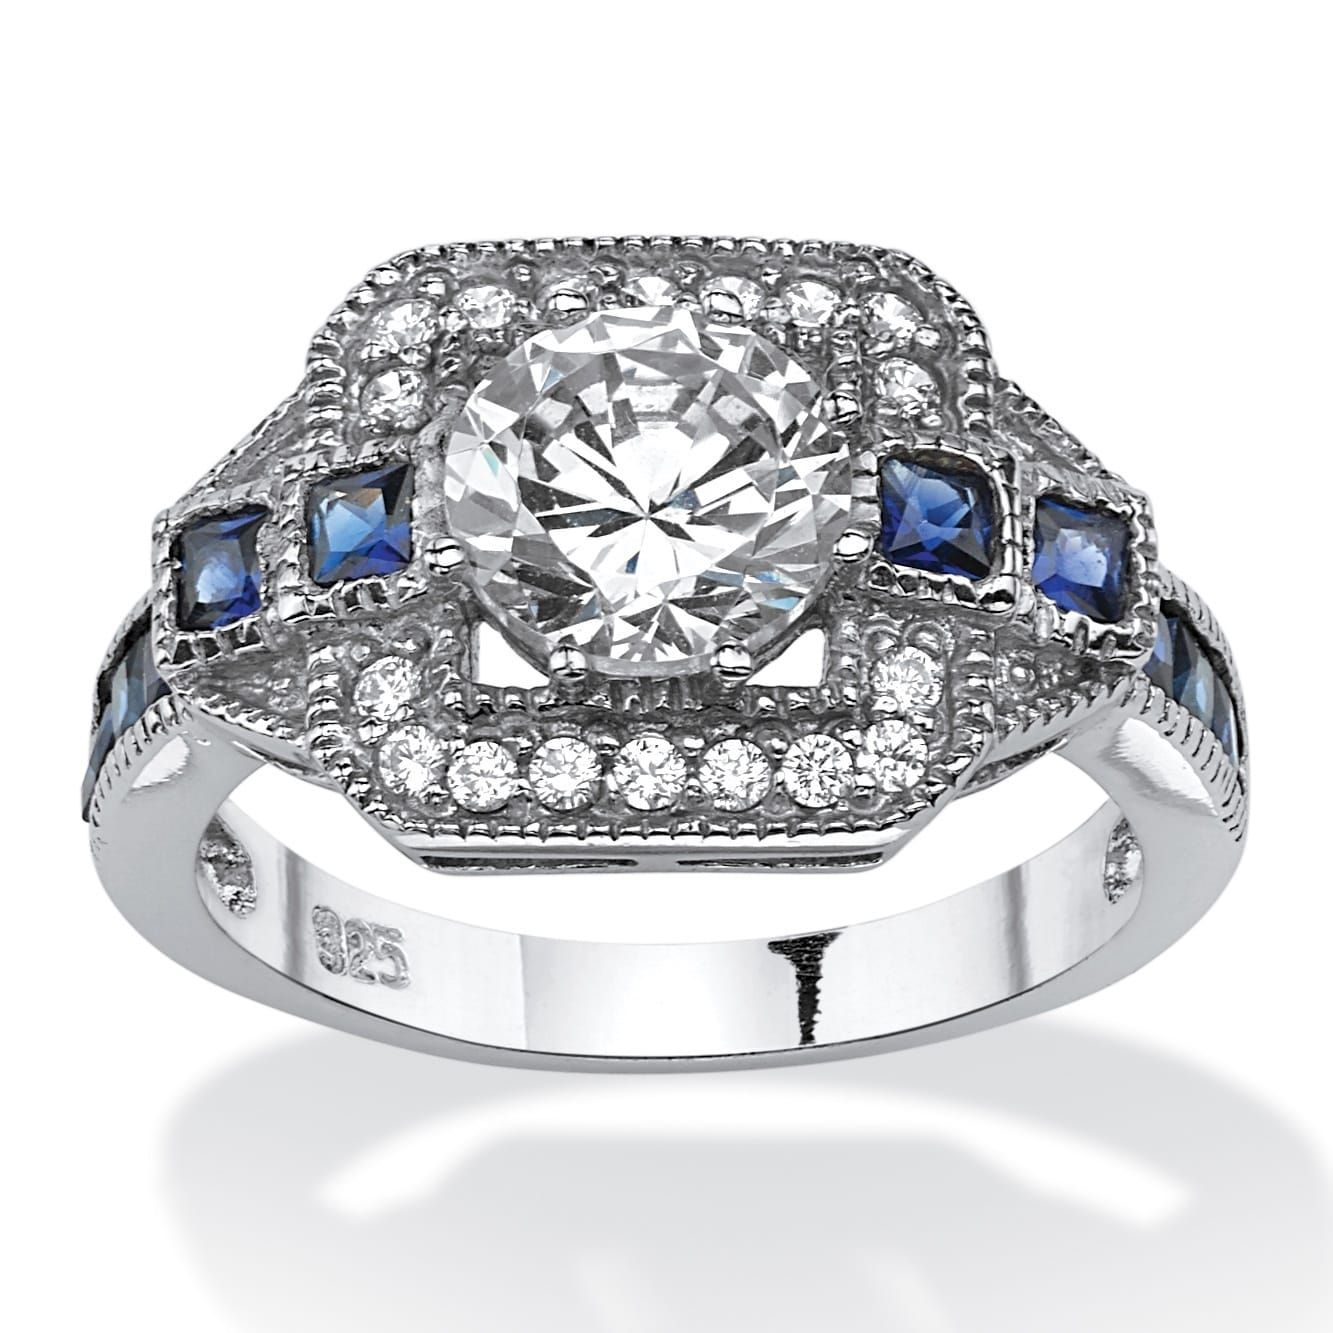 Platinum over Sterling Silver CZ and Sapphire Engagement